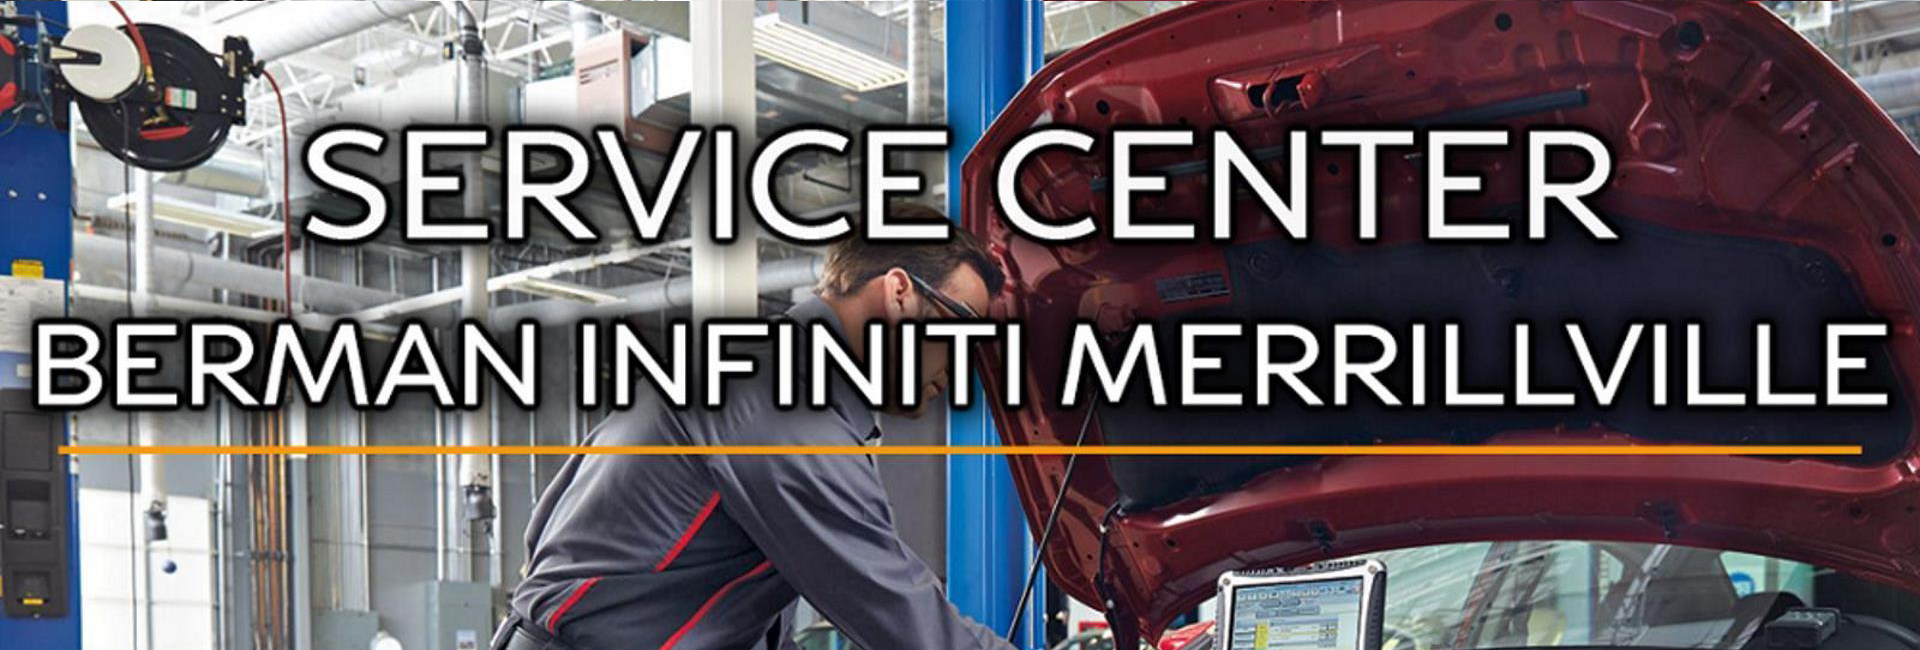 Service Center at Berman INFINITI of Merrillville